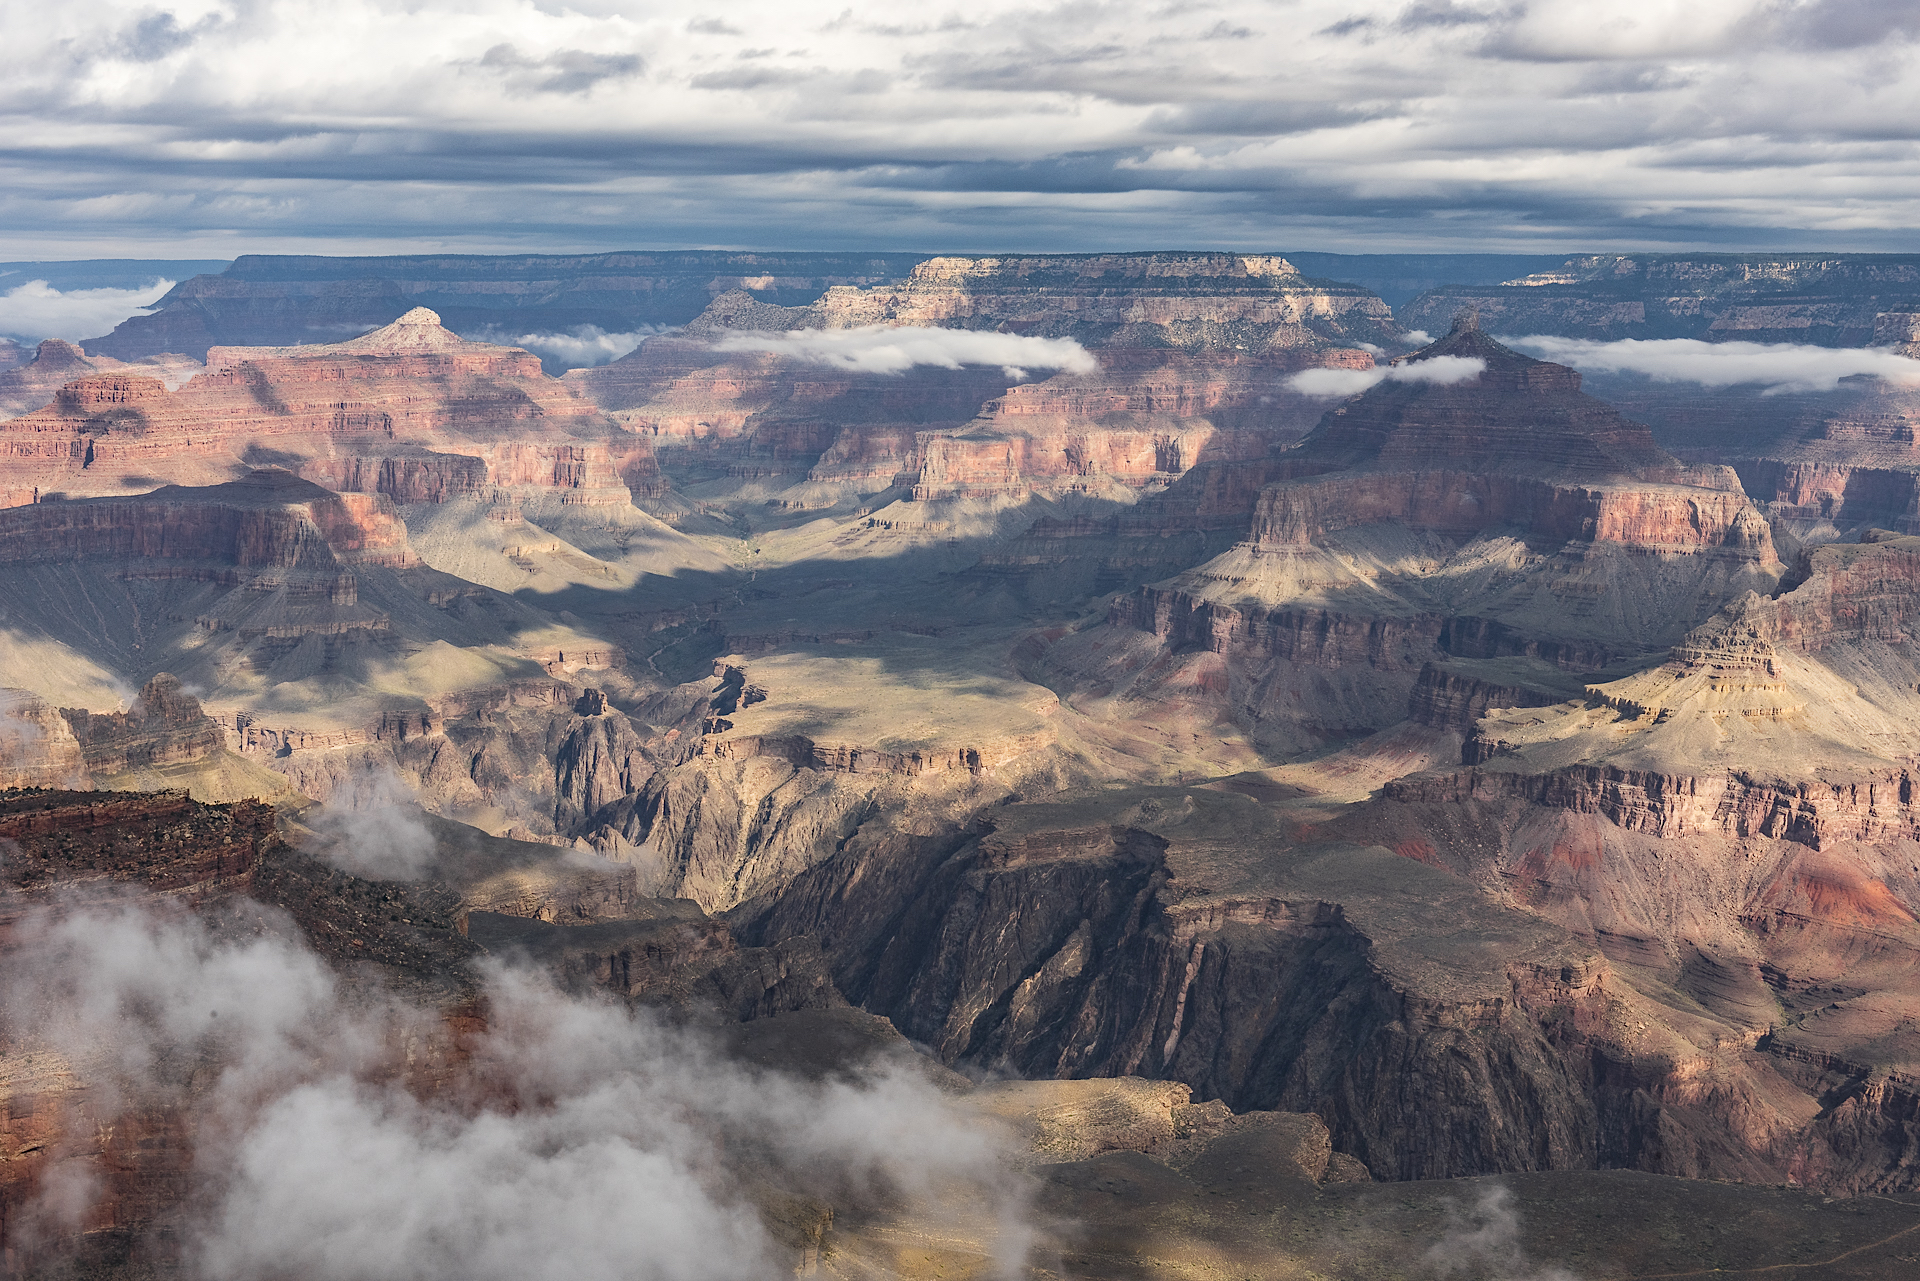 Morning clouds linger over the Grand Canyon at Yavapai Point